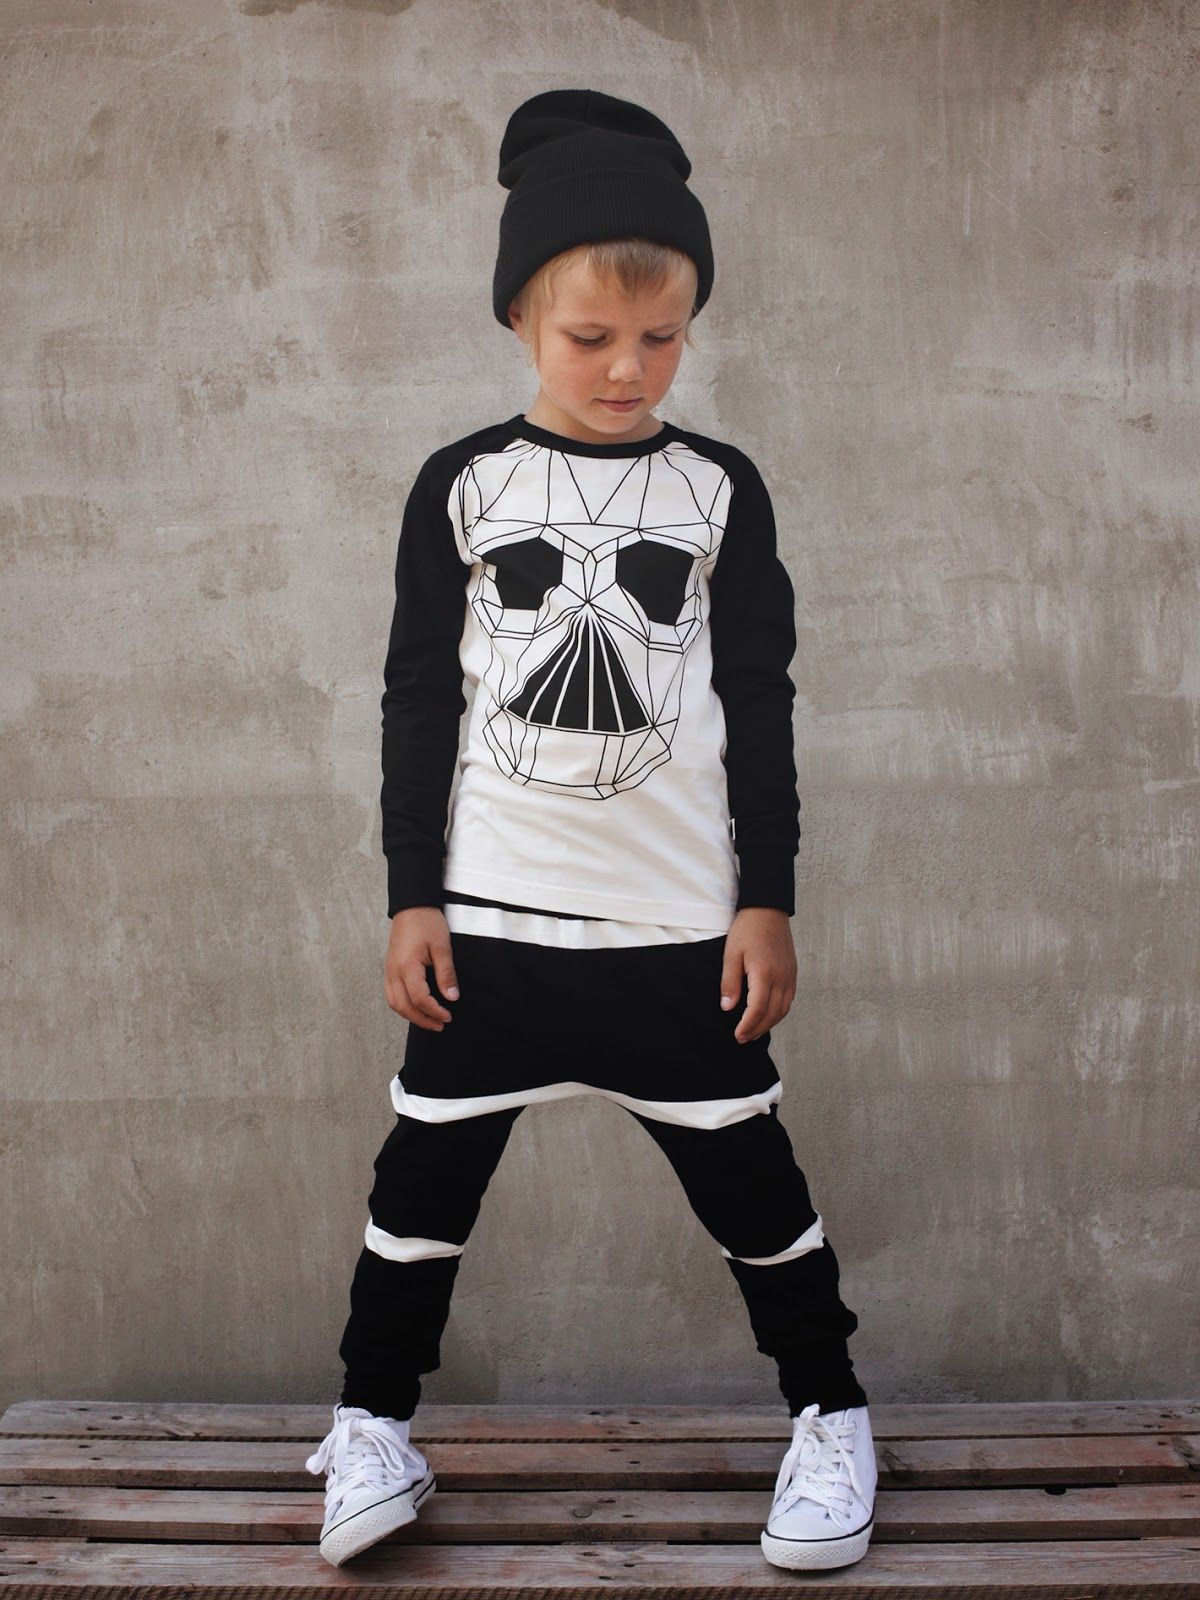 Monochrome styles in organic cotton by Mainio Clothing for autumn 2014 collection